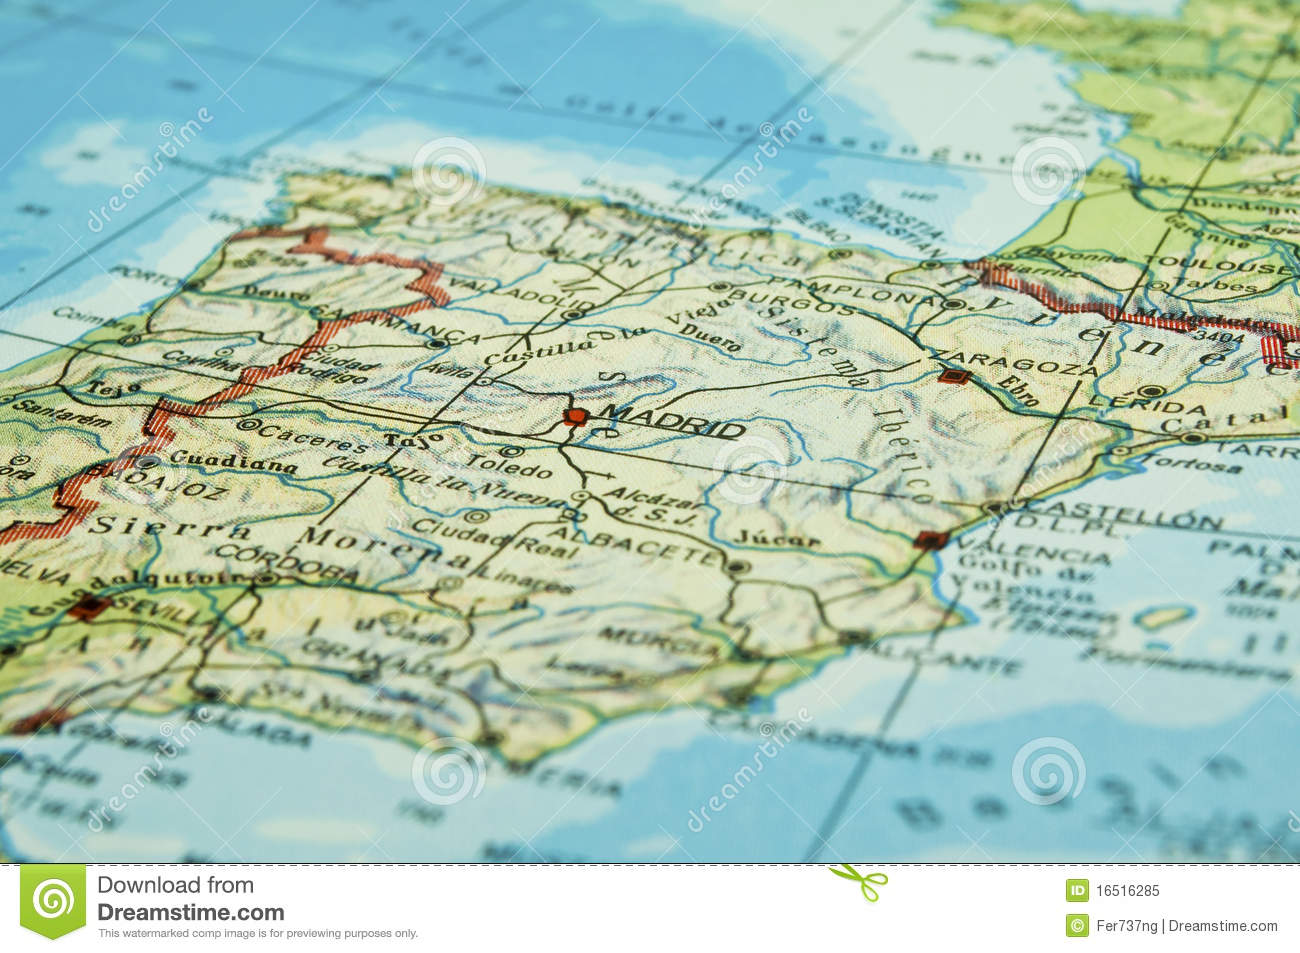 Coast Of Spain Map.Map Of Spain Stock Image Image Of Coast Geography 16516285